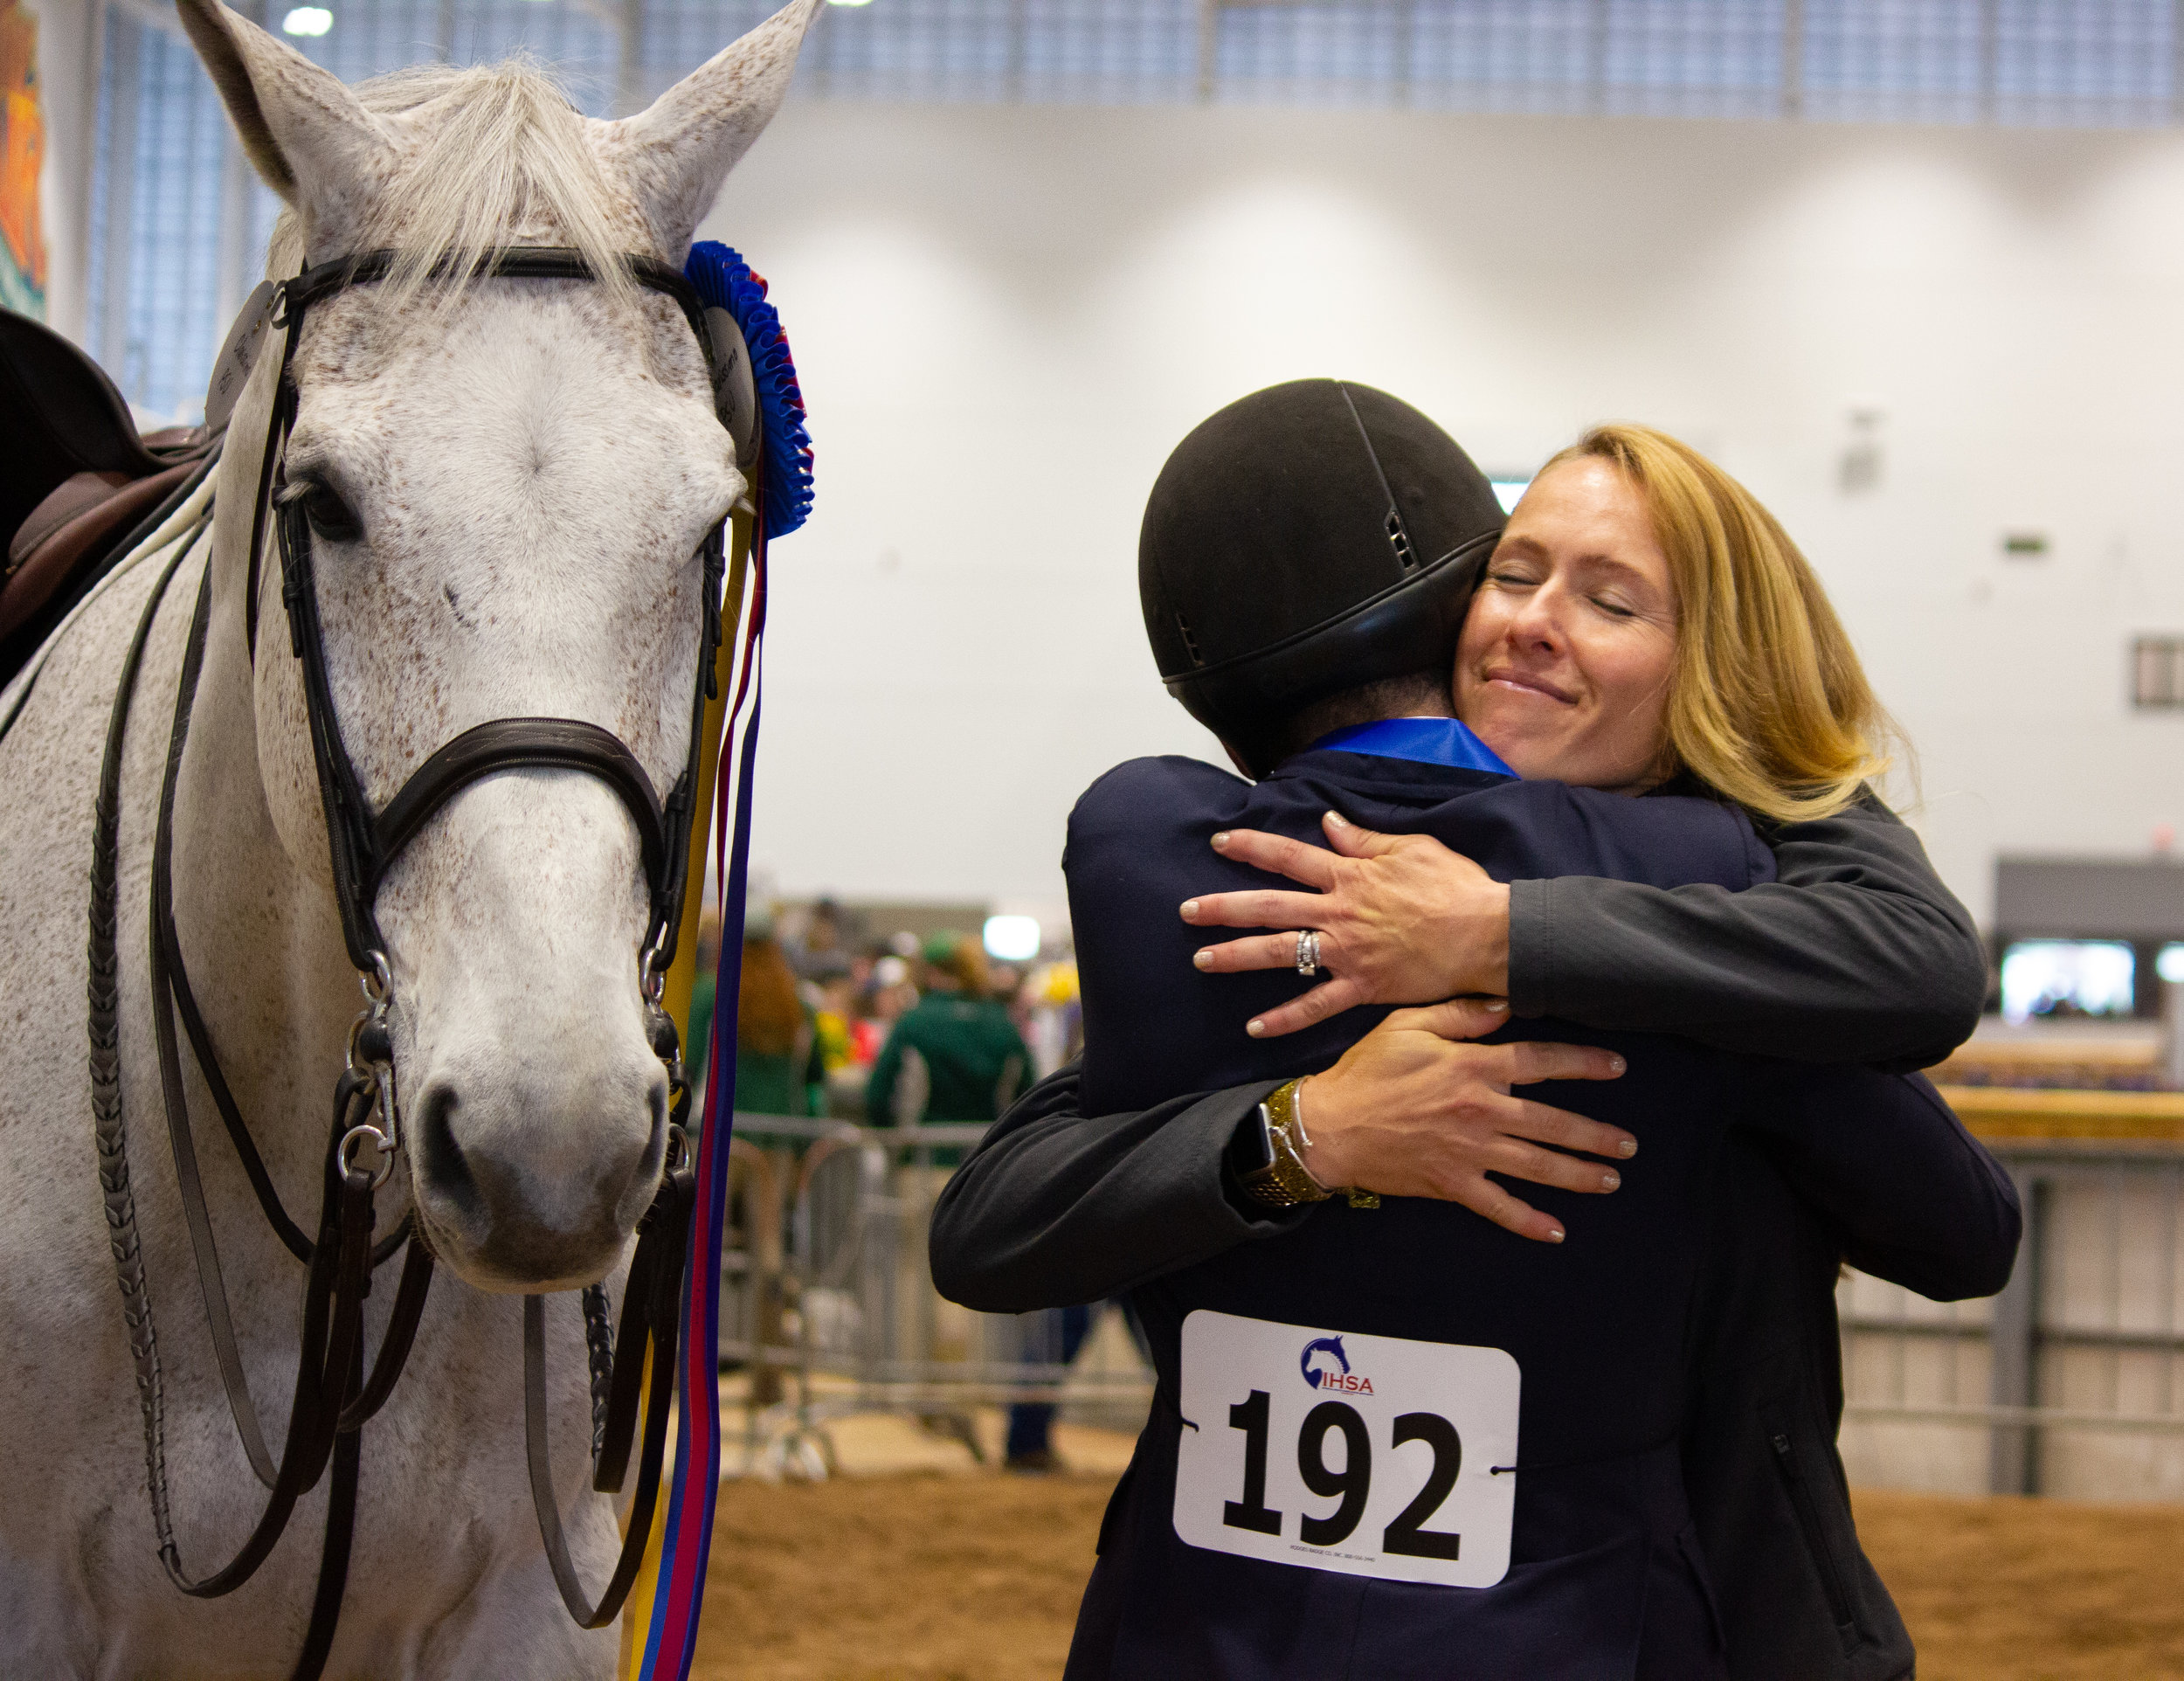 Adam Edgar gets a hug from SCAD coach Ashley Henry as Clarissimo, owned by Hollins University, looks on. Photo by Ellyn Narodowy